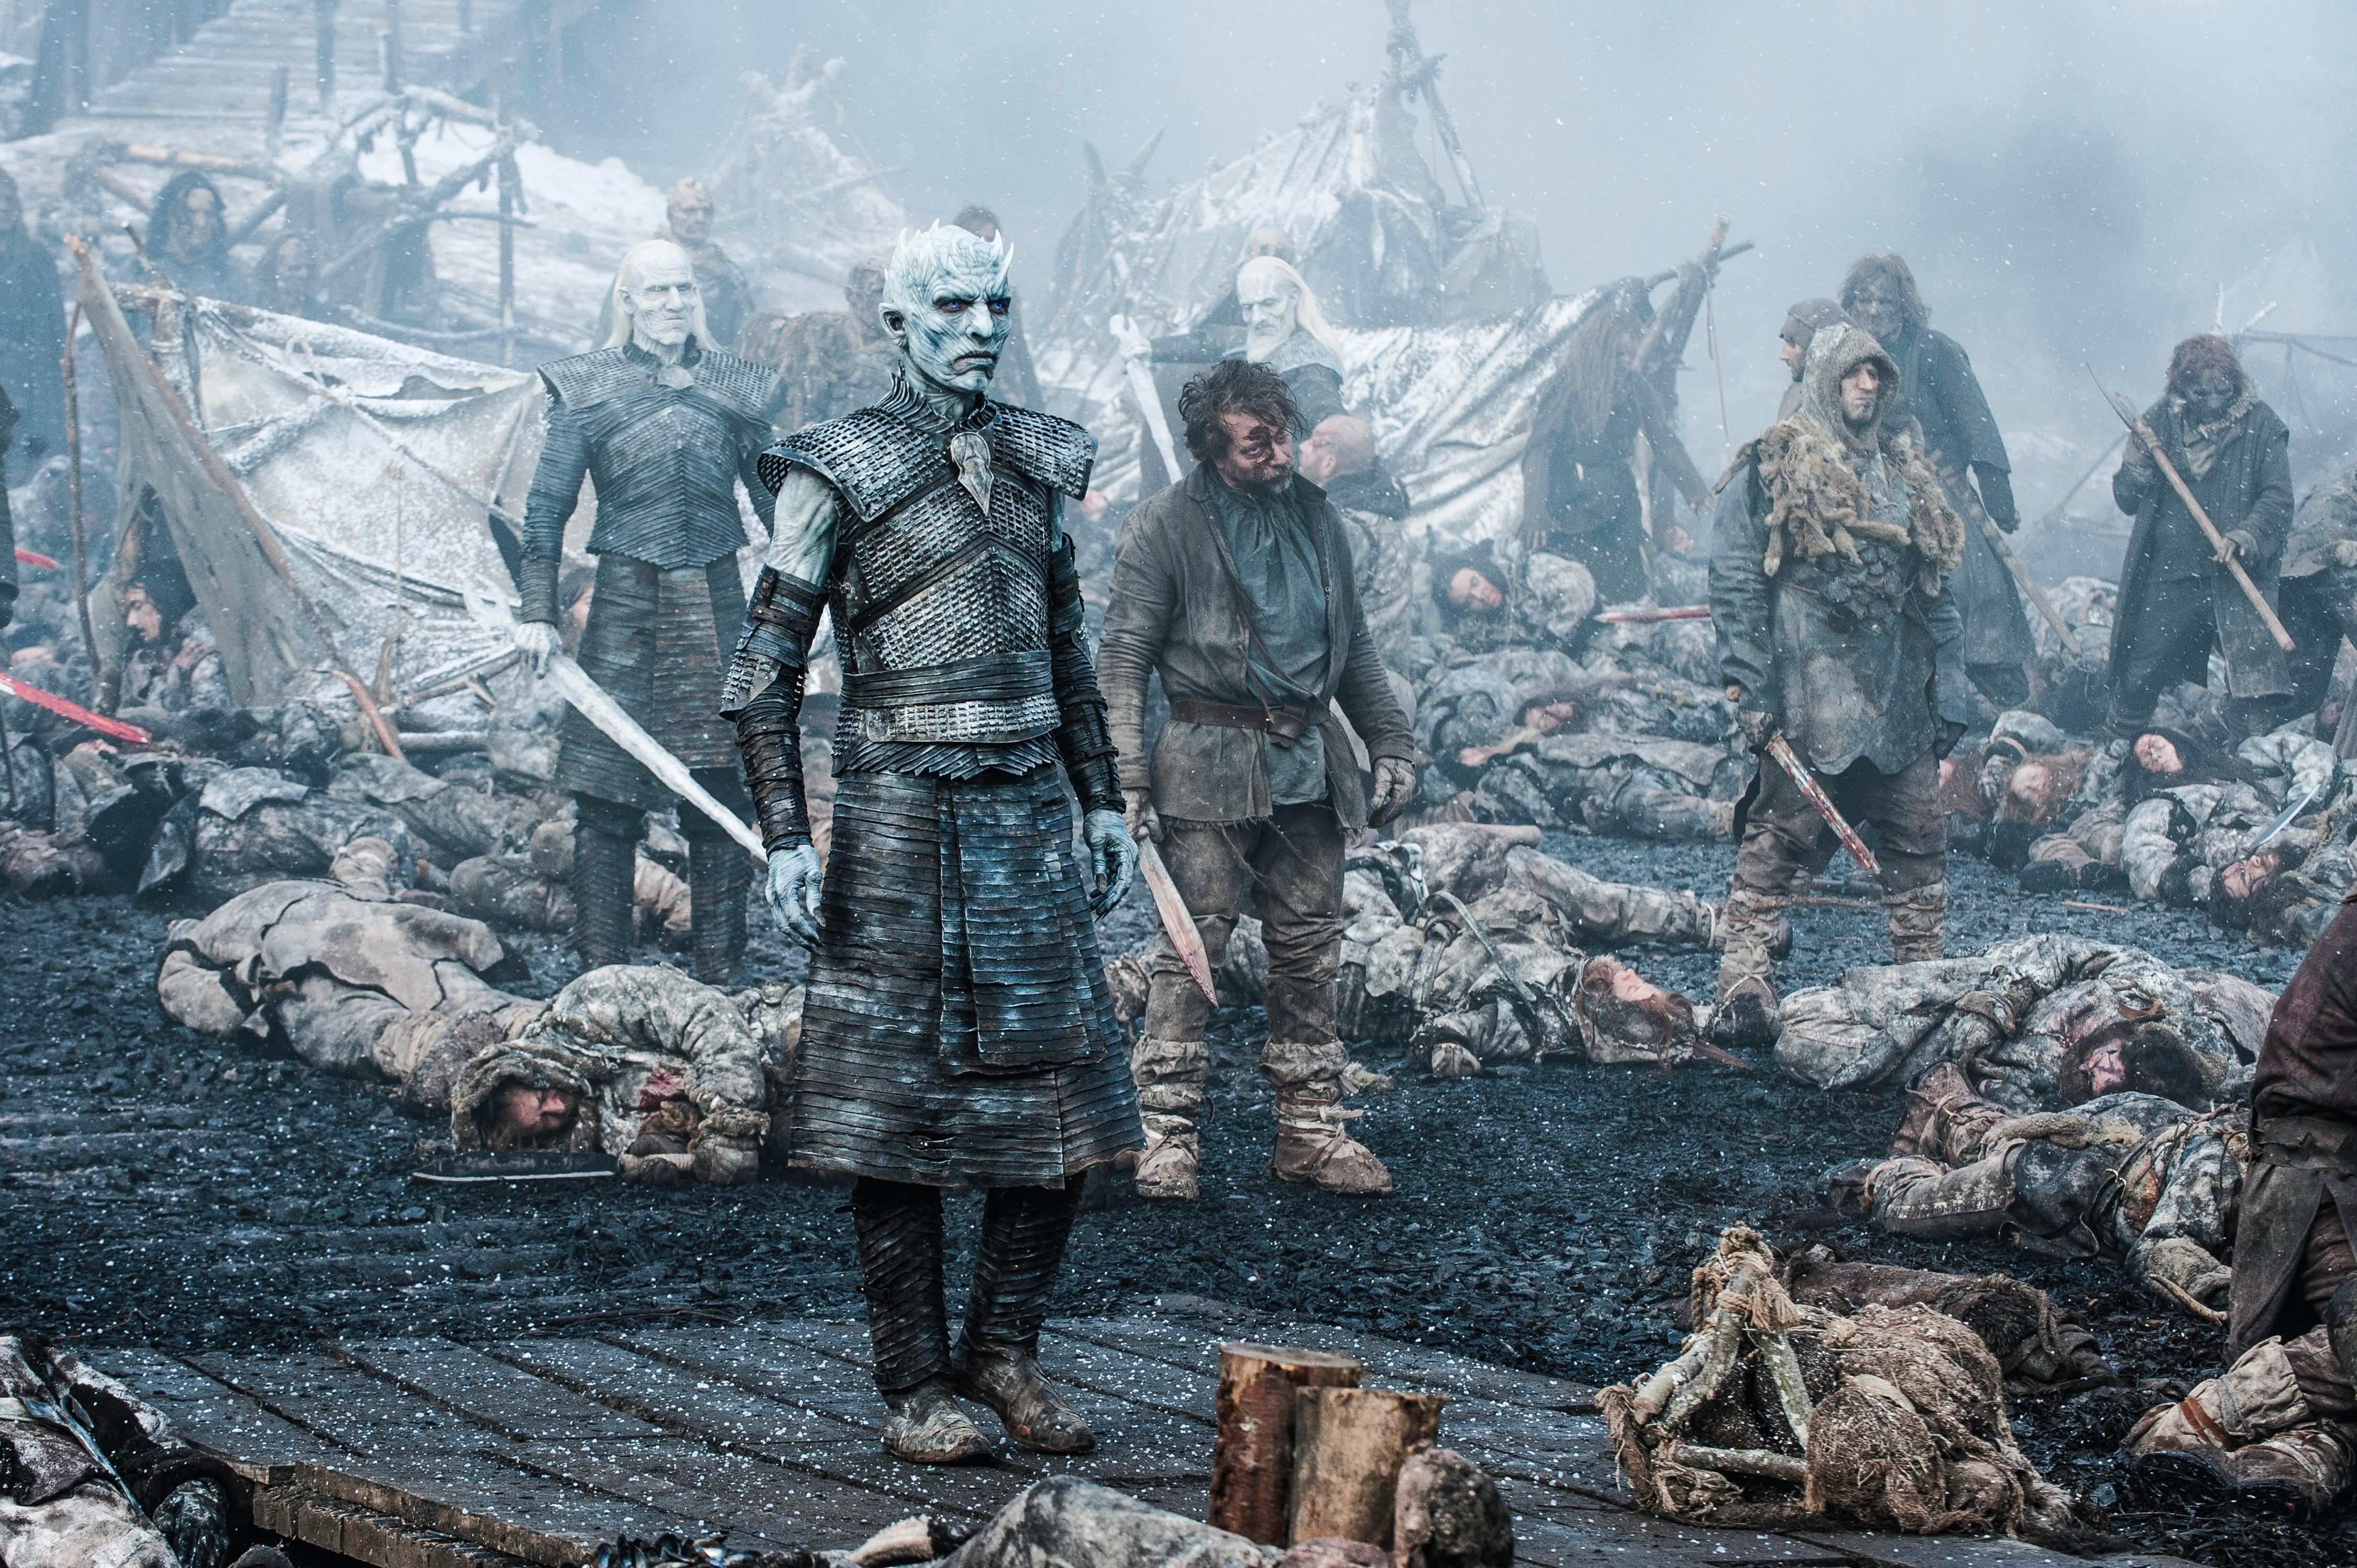 Game Of Thrones 4k Ultra Hd Wallpaper Background Image 4500x2994